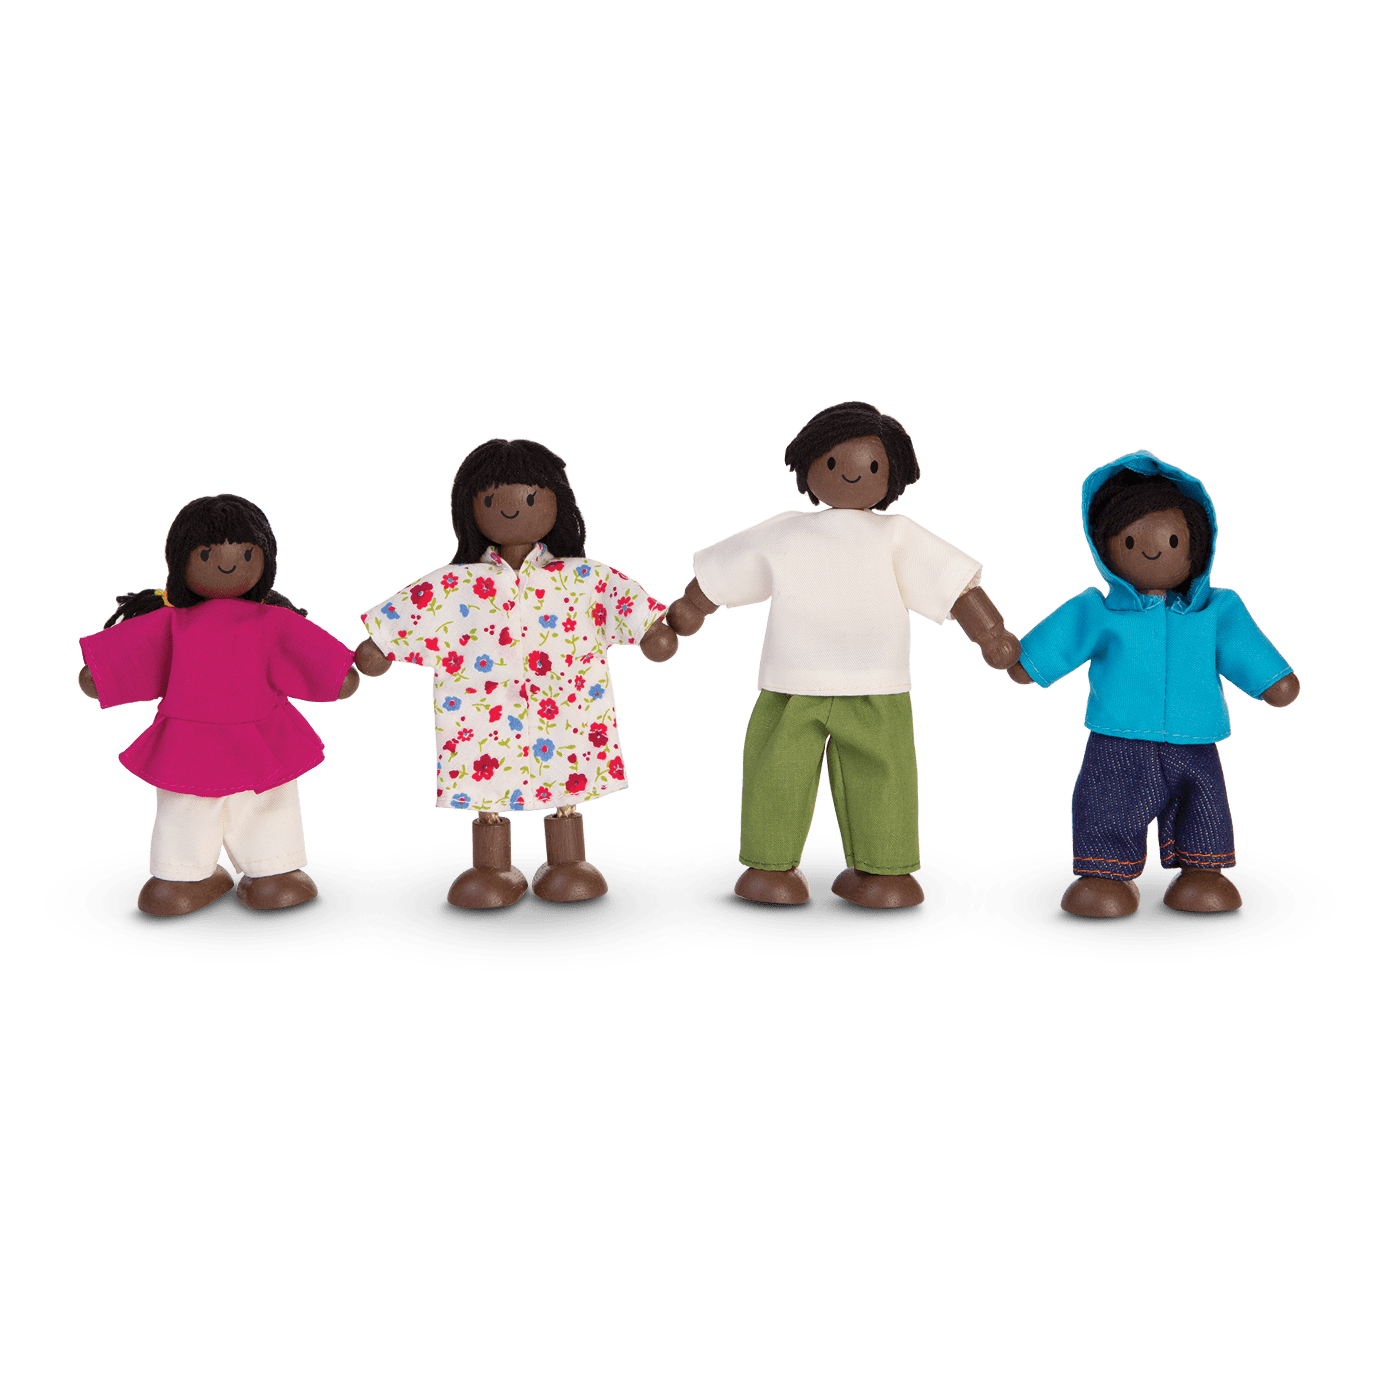 7416_PlanToys_ETHNIC_FAMILY_Pretend_Play_Imagination_Coordination_Language_and_Communications_Social_Fine_Motor_3yrs_Wooden_toys_Education_toys_Safety_Toys_Non-toxic_0.png